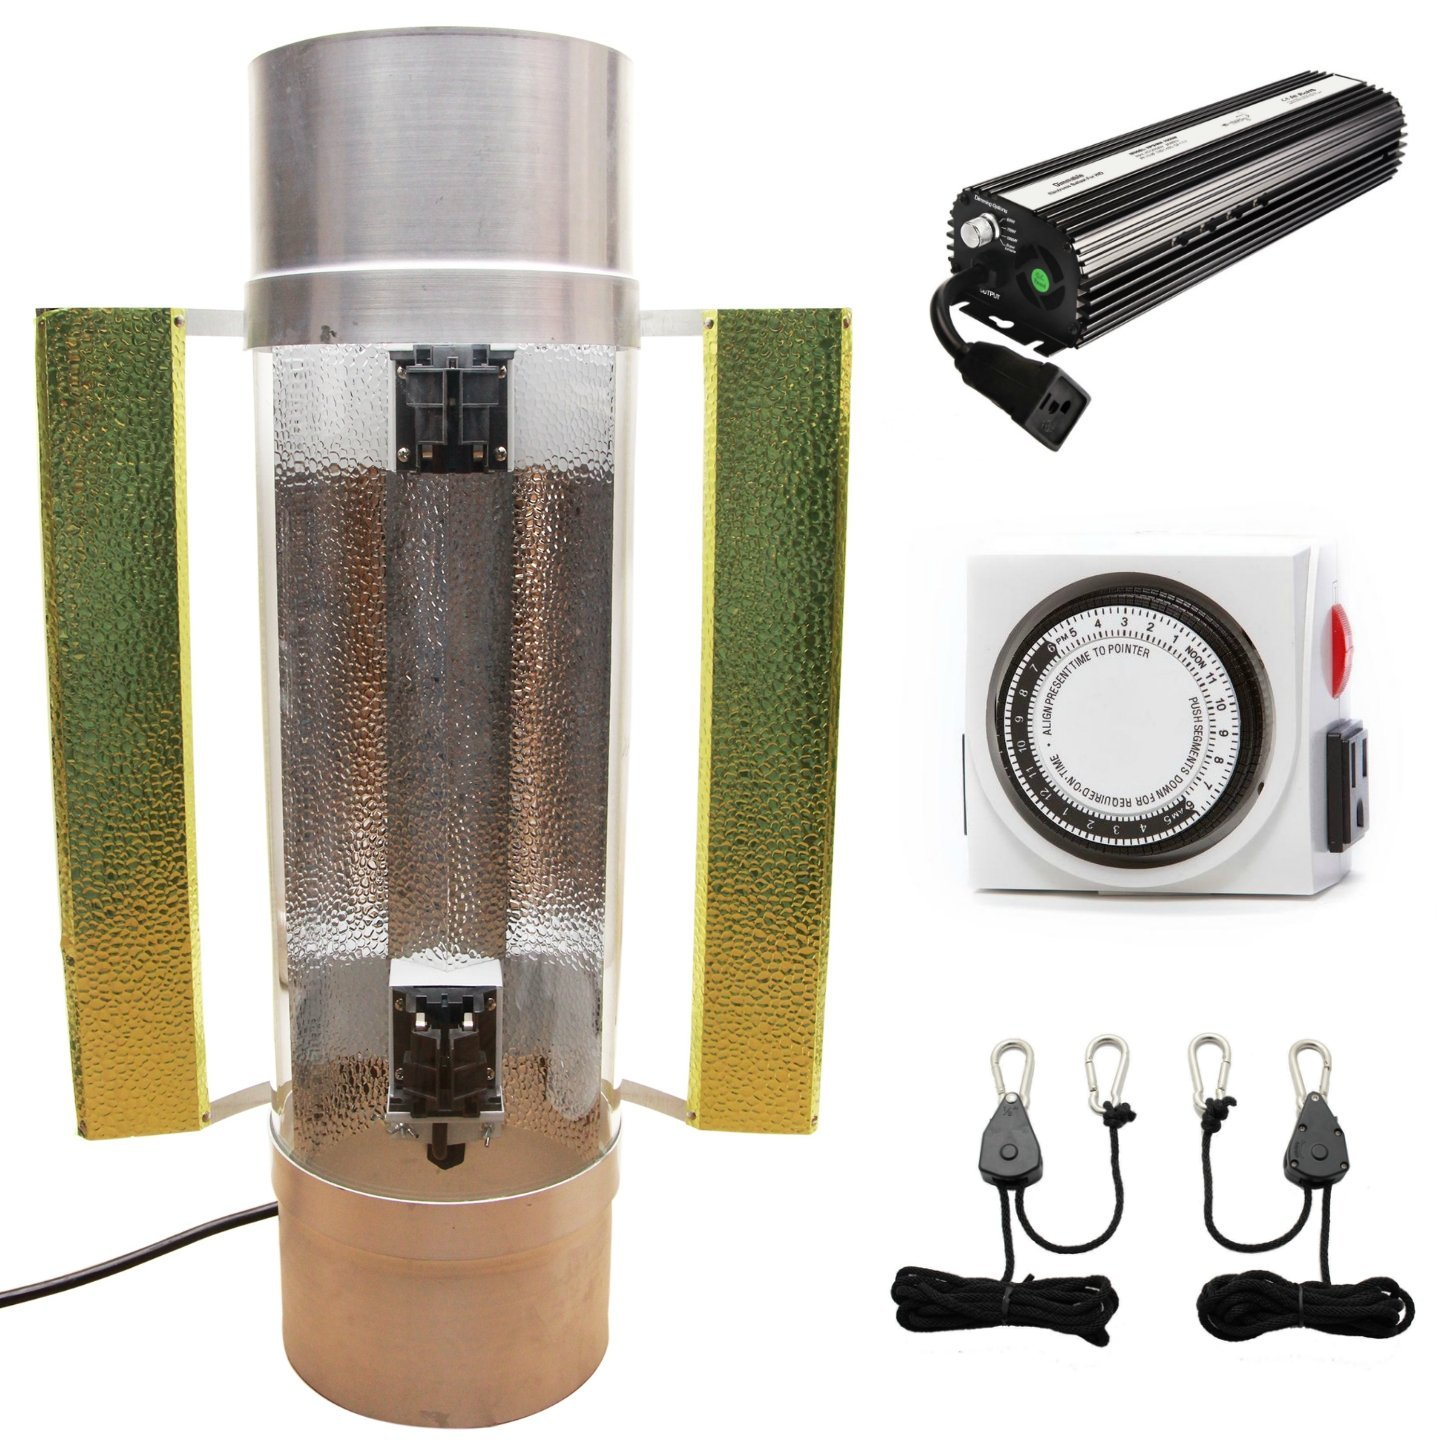 ARCLIGHT Cool Tube 8'' Reflector Kit with Ballast, Rope Ratchet, and Timer (Bulb Included)